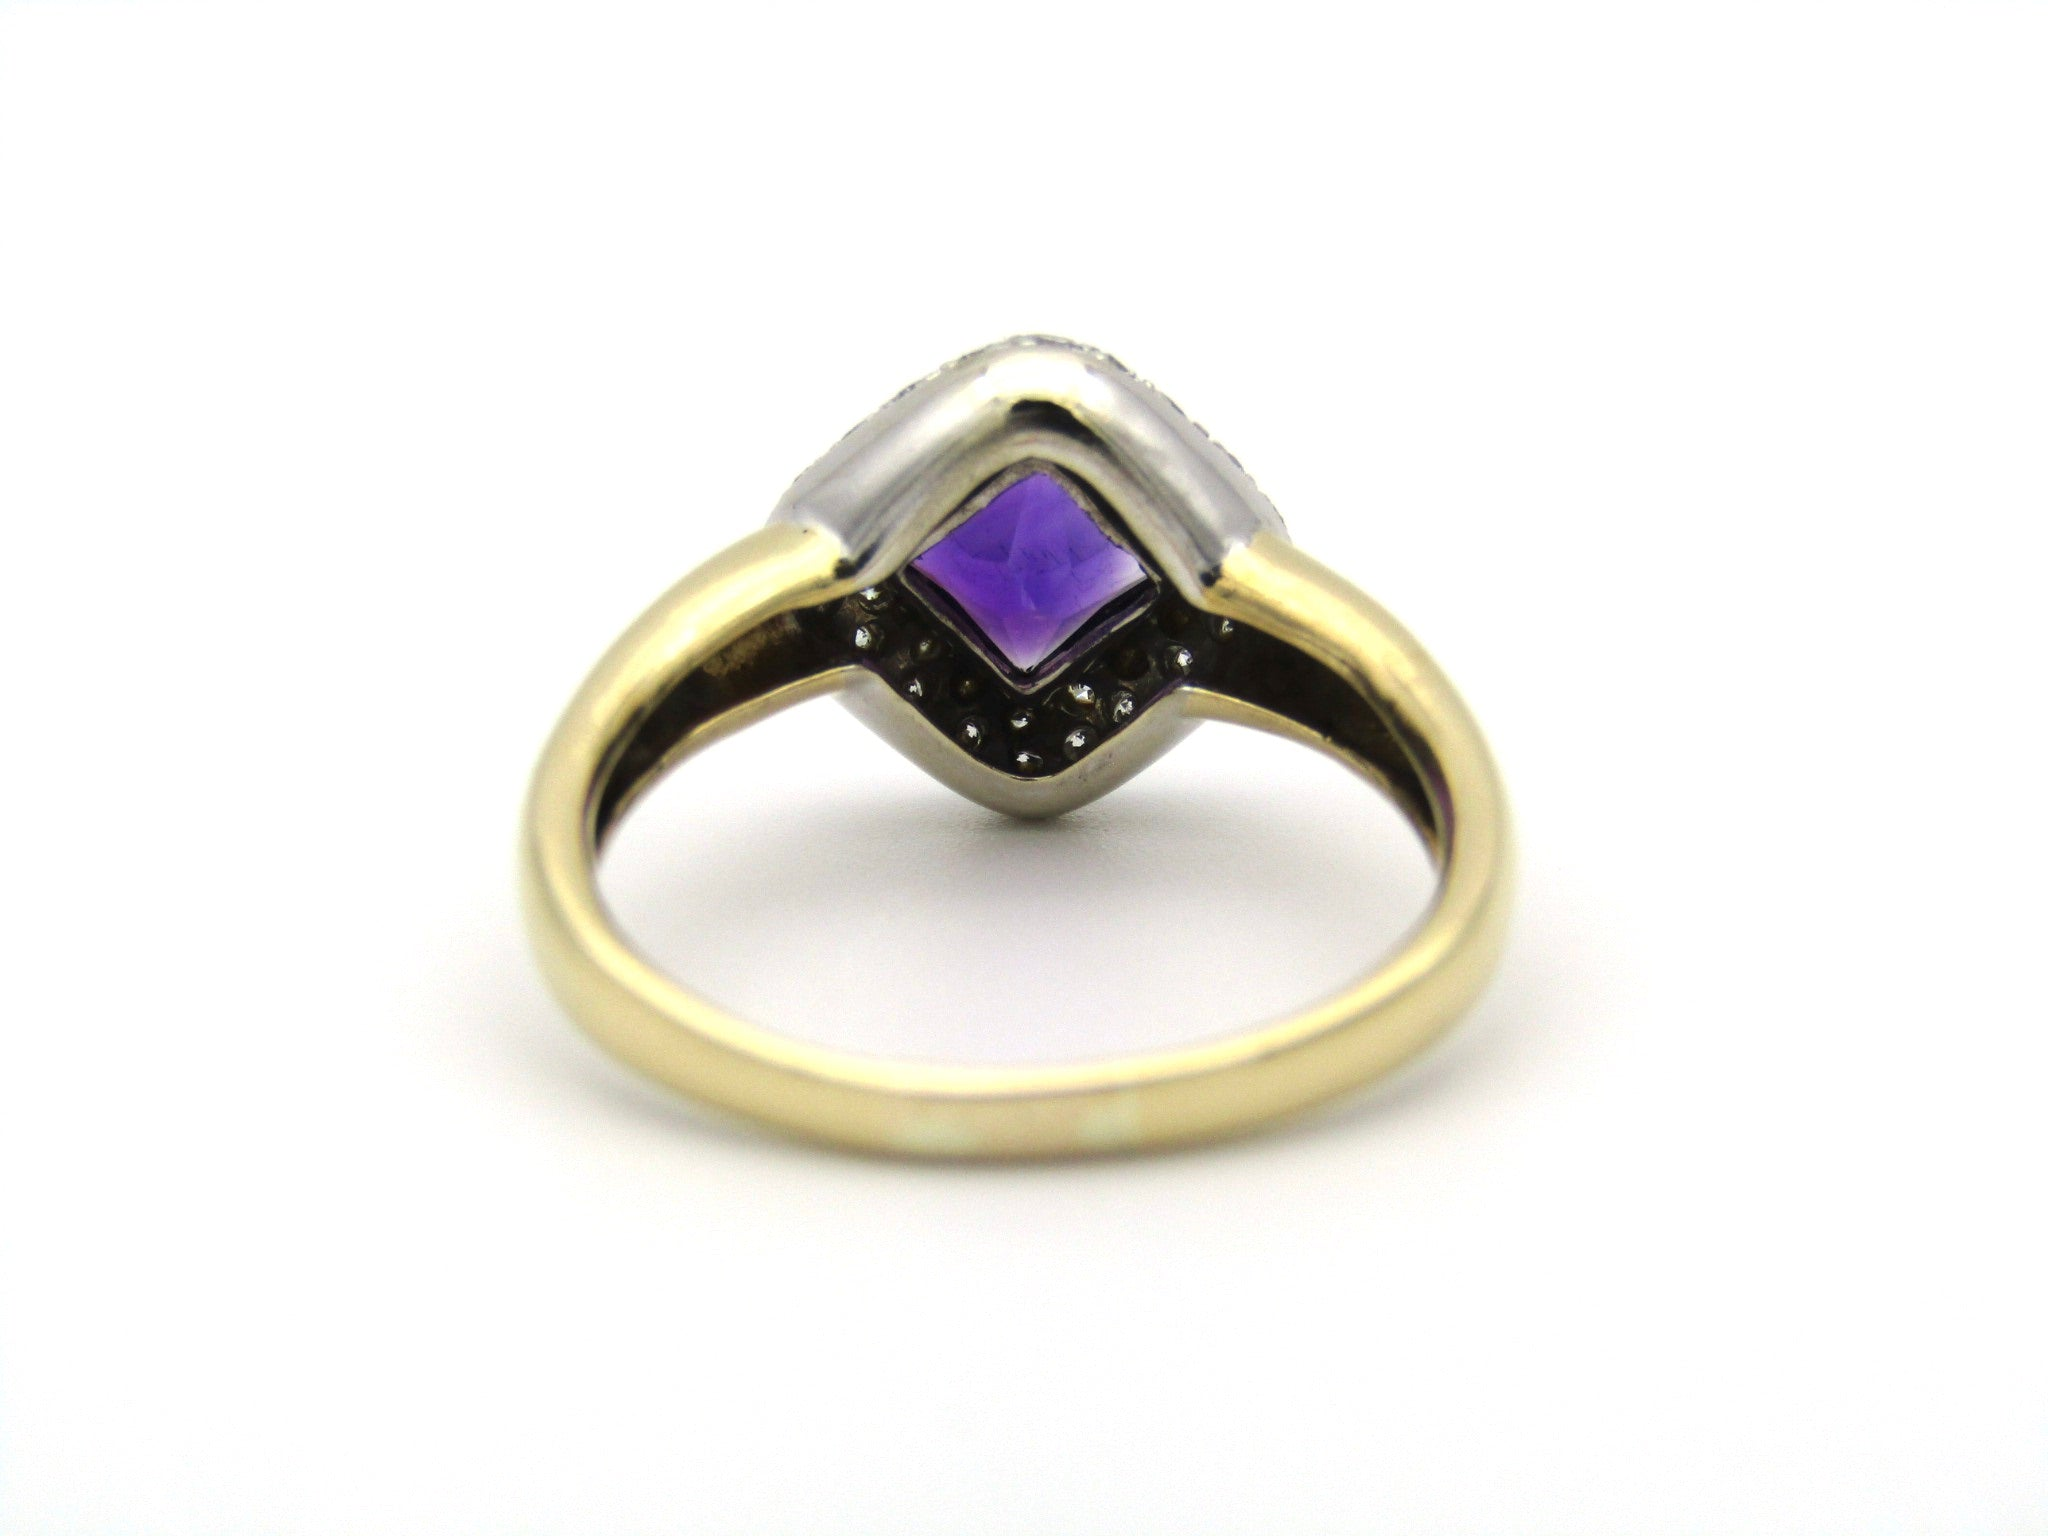 18K gold amethyst and diamond ring.